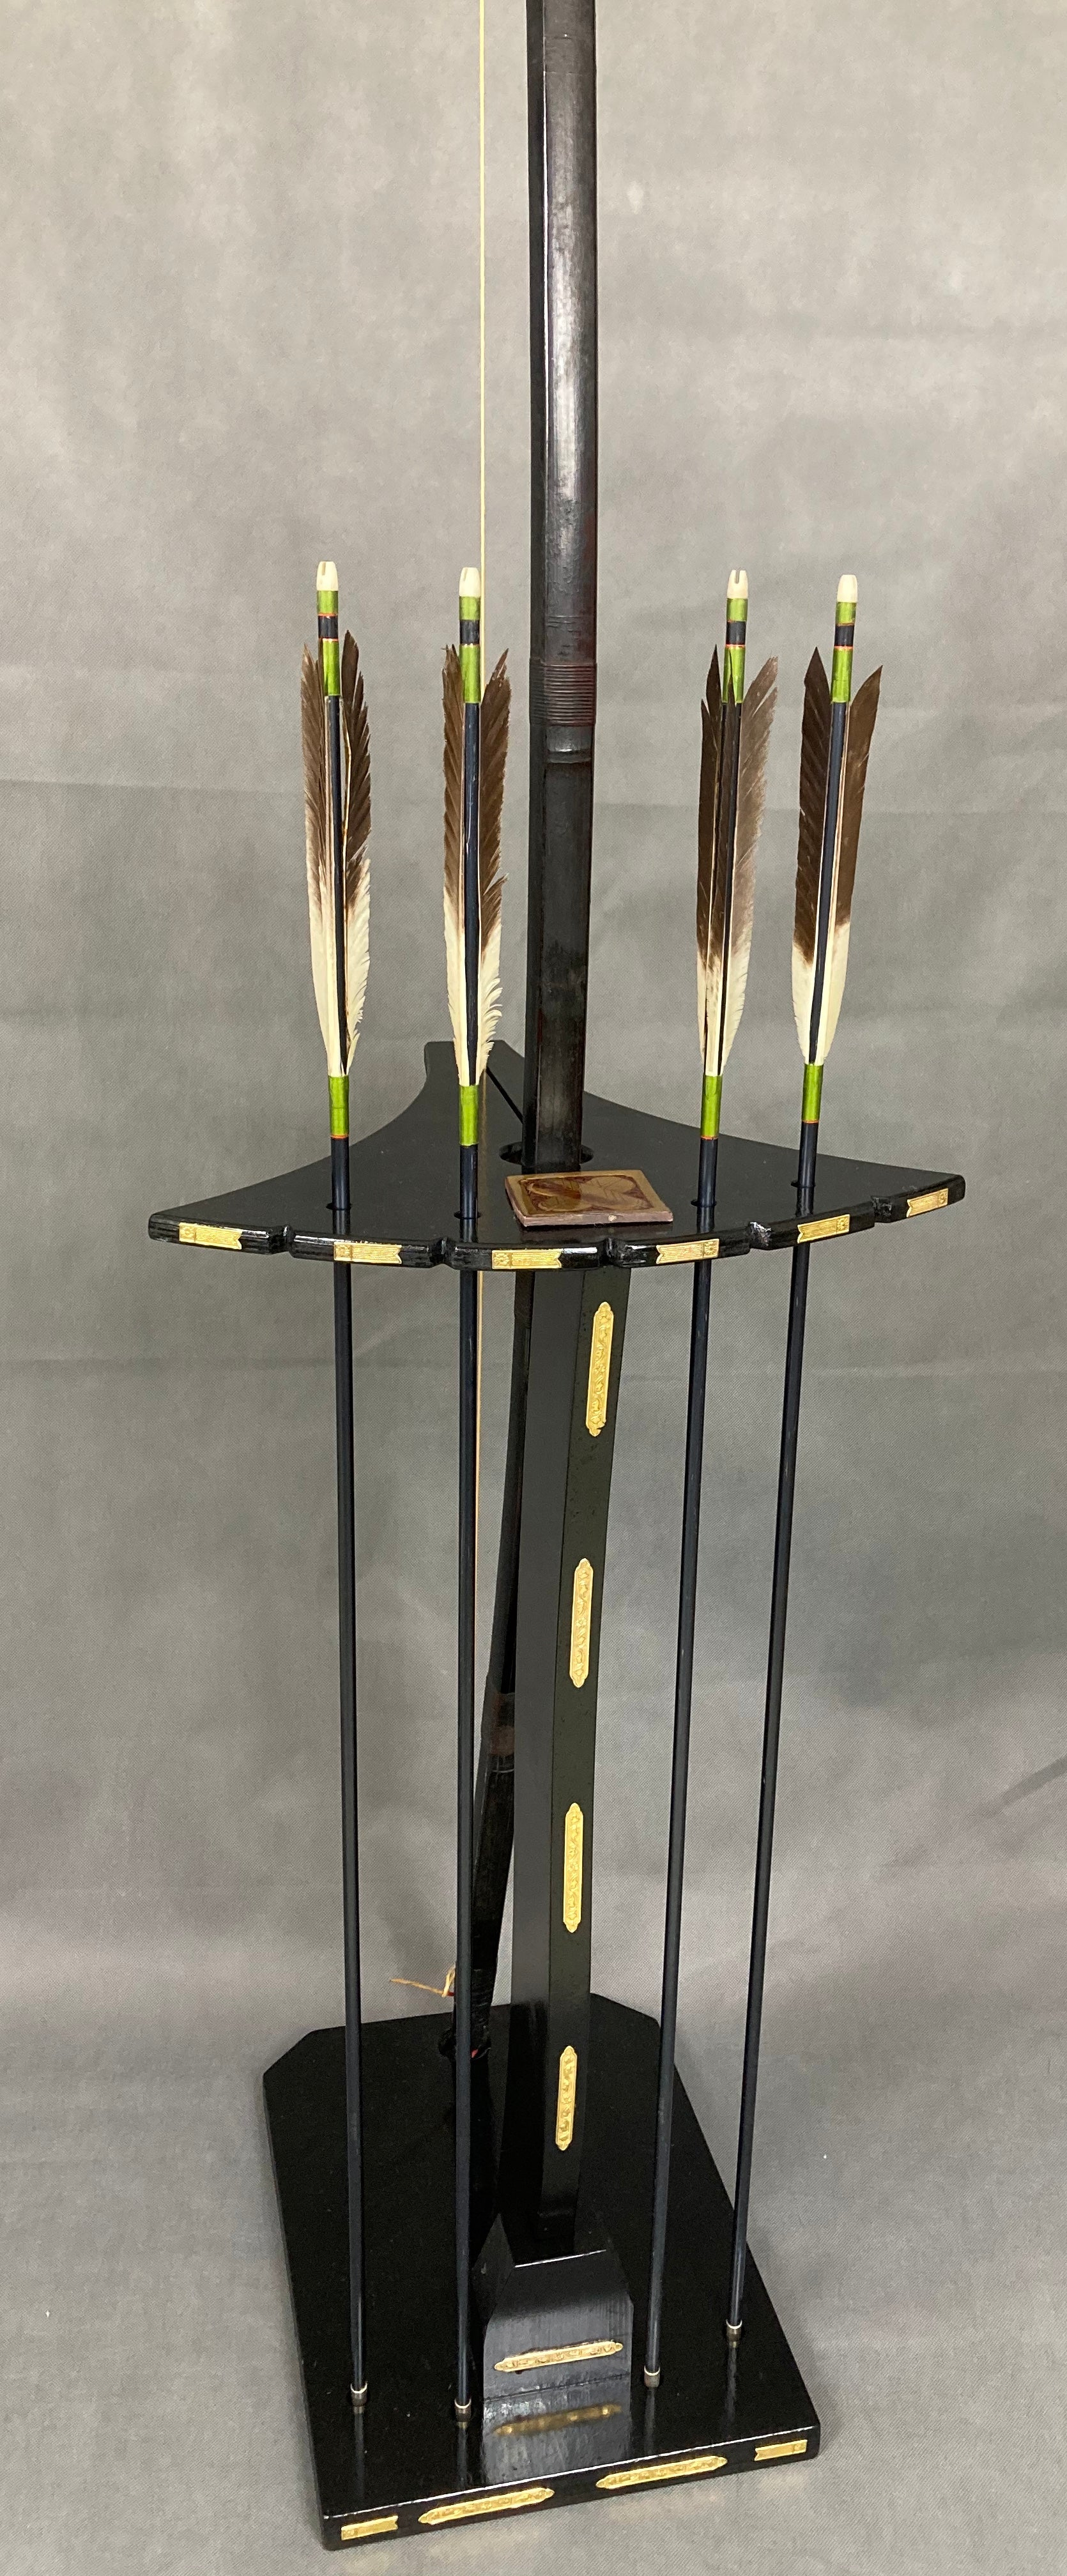 Bow ( Yumi.) and arrow display - Yamazakura